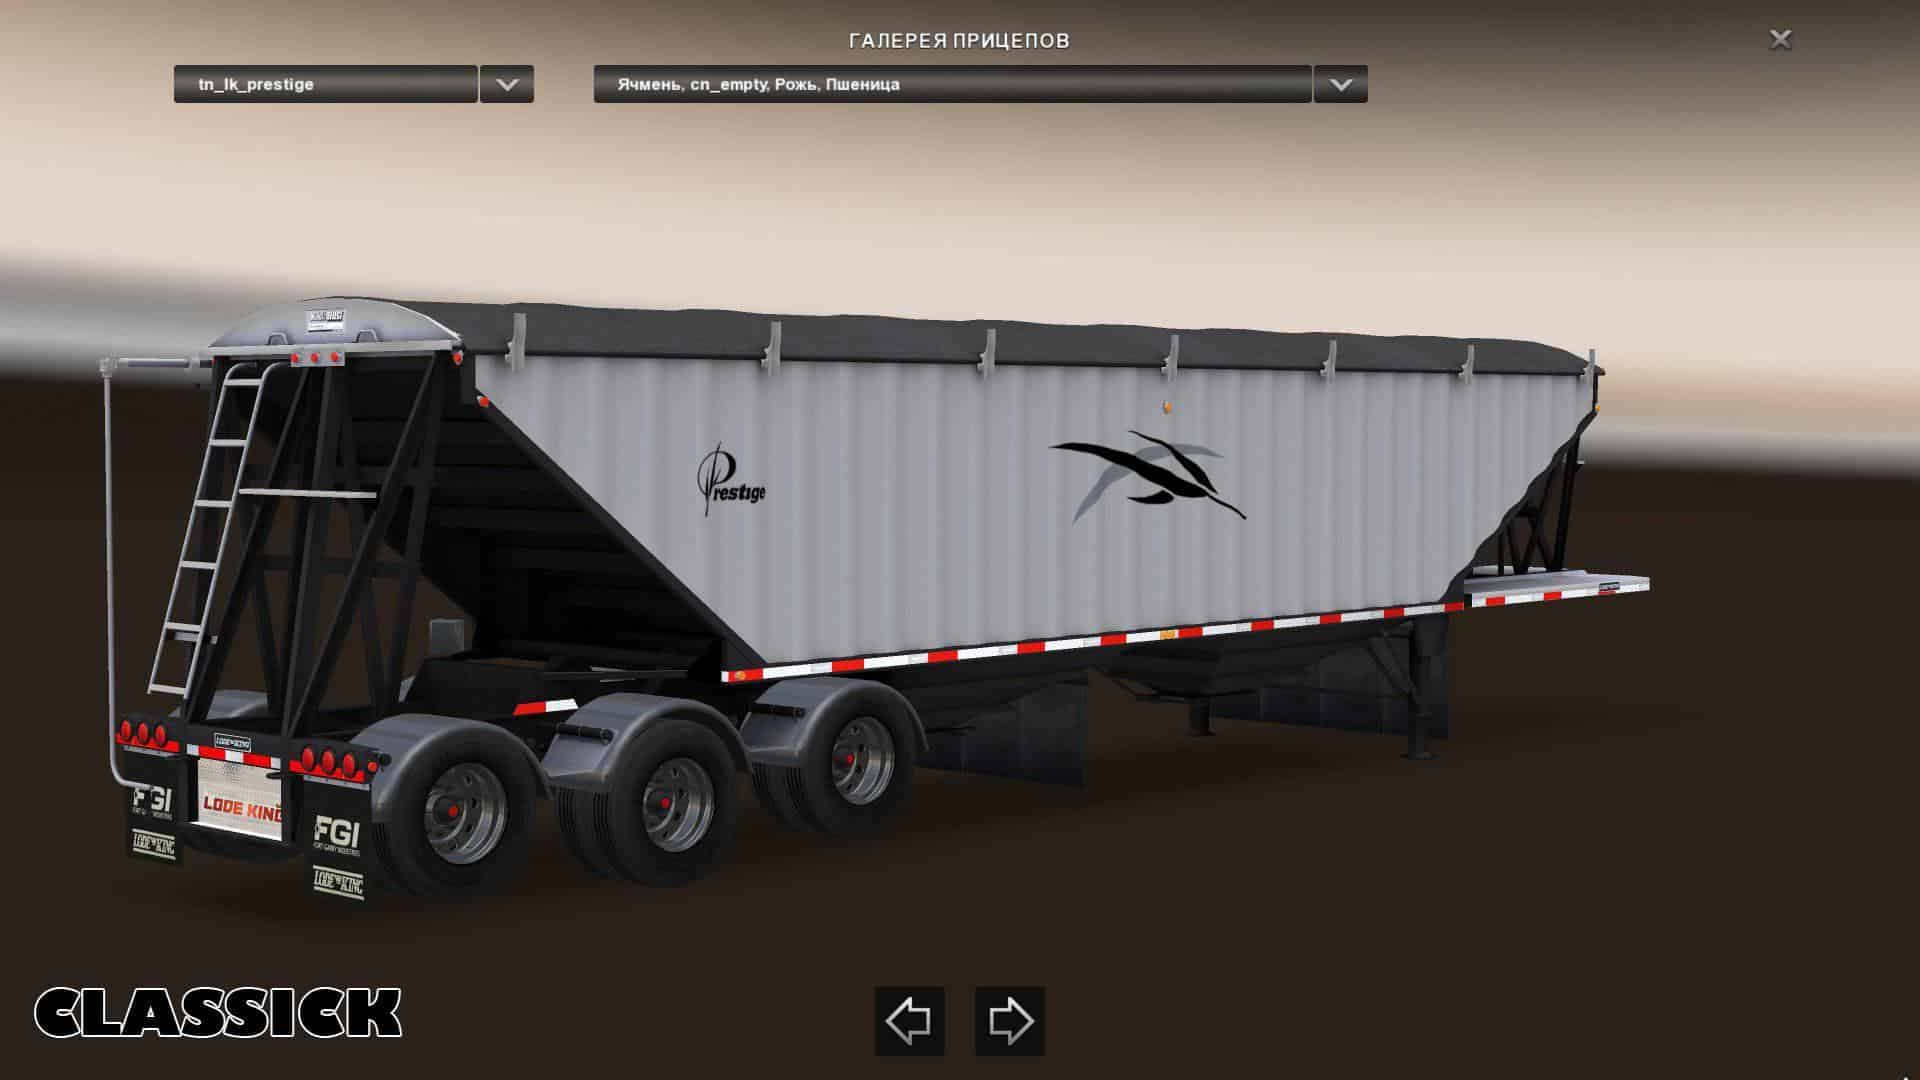 A Truck Fan  pletes His Super Sized Peterbilt 359 Rc Truck Video further How To Draw A Pickup Truck in addition How To Draw Monstertruck Jump moreover Peterbilt Gas Monkey Edition 531590375 moreover Smokey And The Bandit Truck. on peterbilt truck drawings